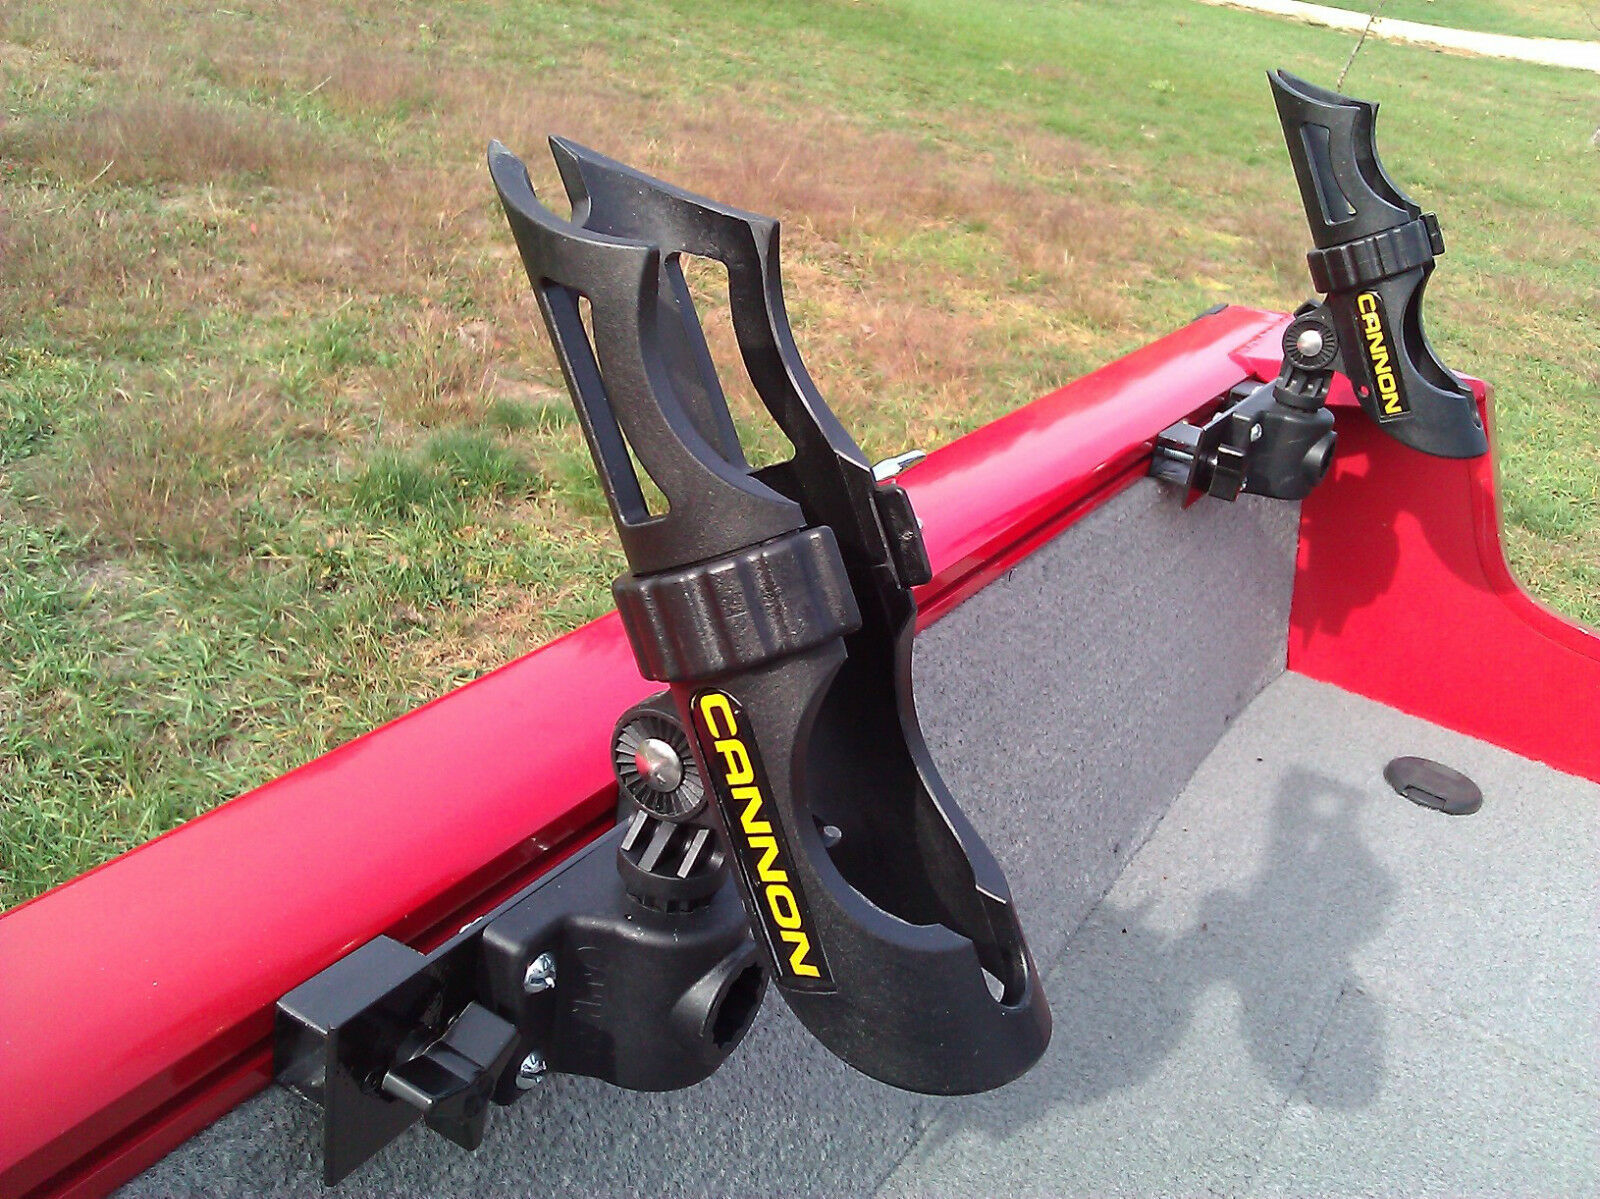 LUND BOAT SPORT TRAK ROD HOLDER - CANNON HOLDER INSTALLED - FREE SHIPPING